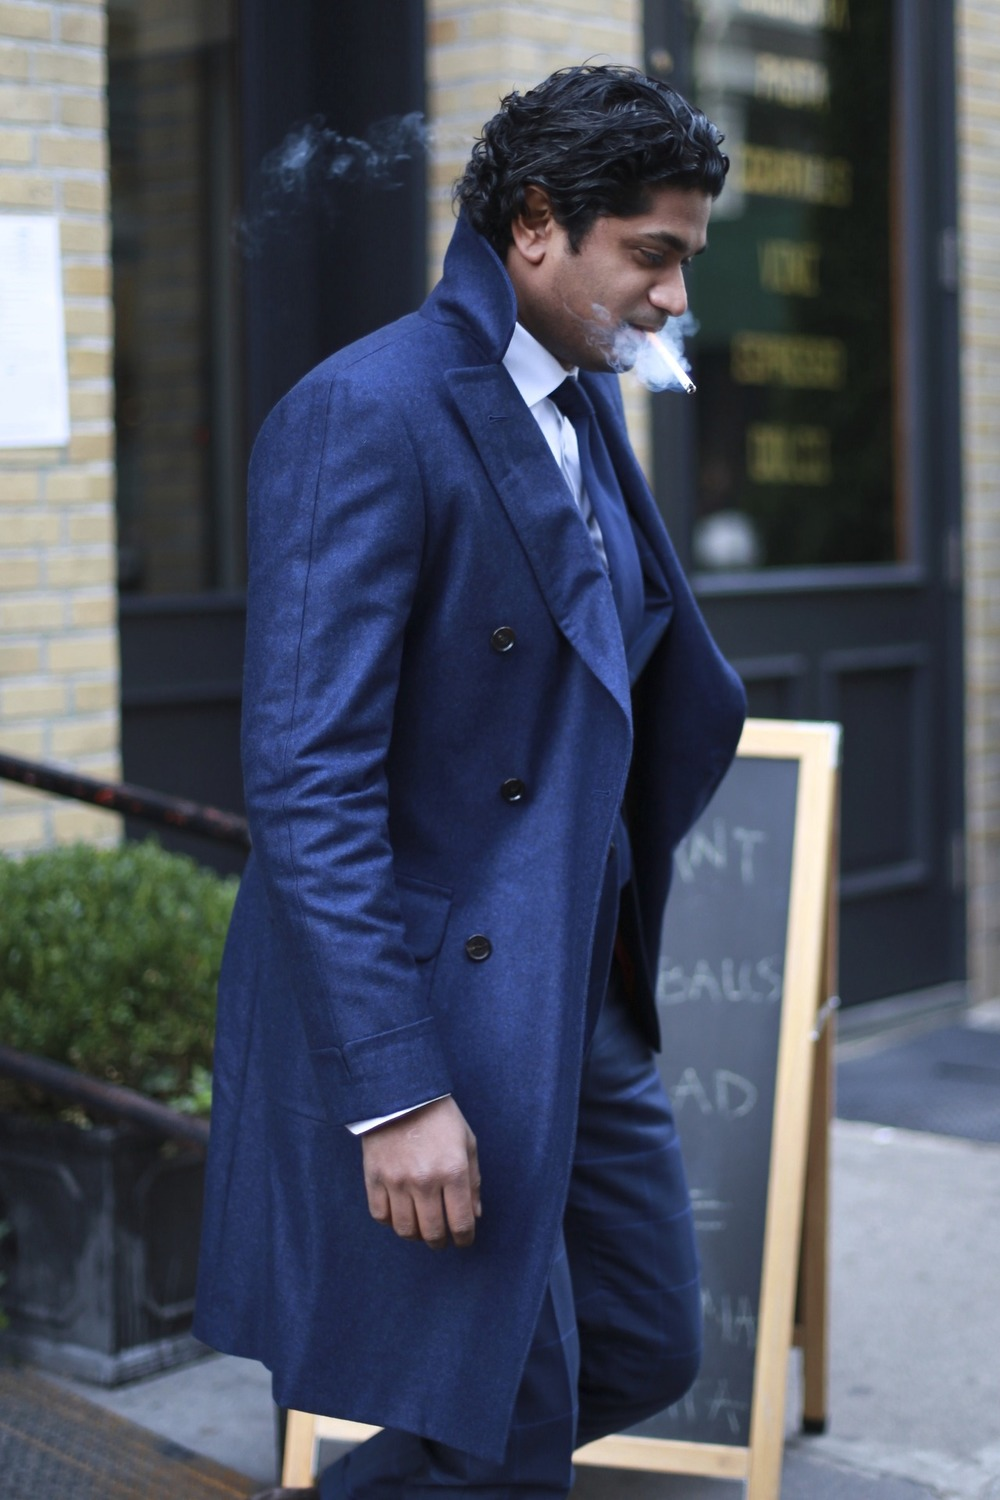 Nish-on-Outerwear-suitsupply-coat-style.jpg